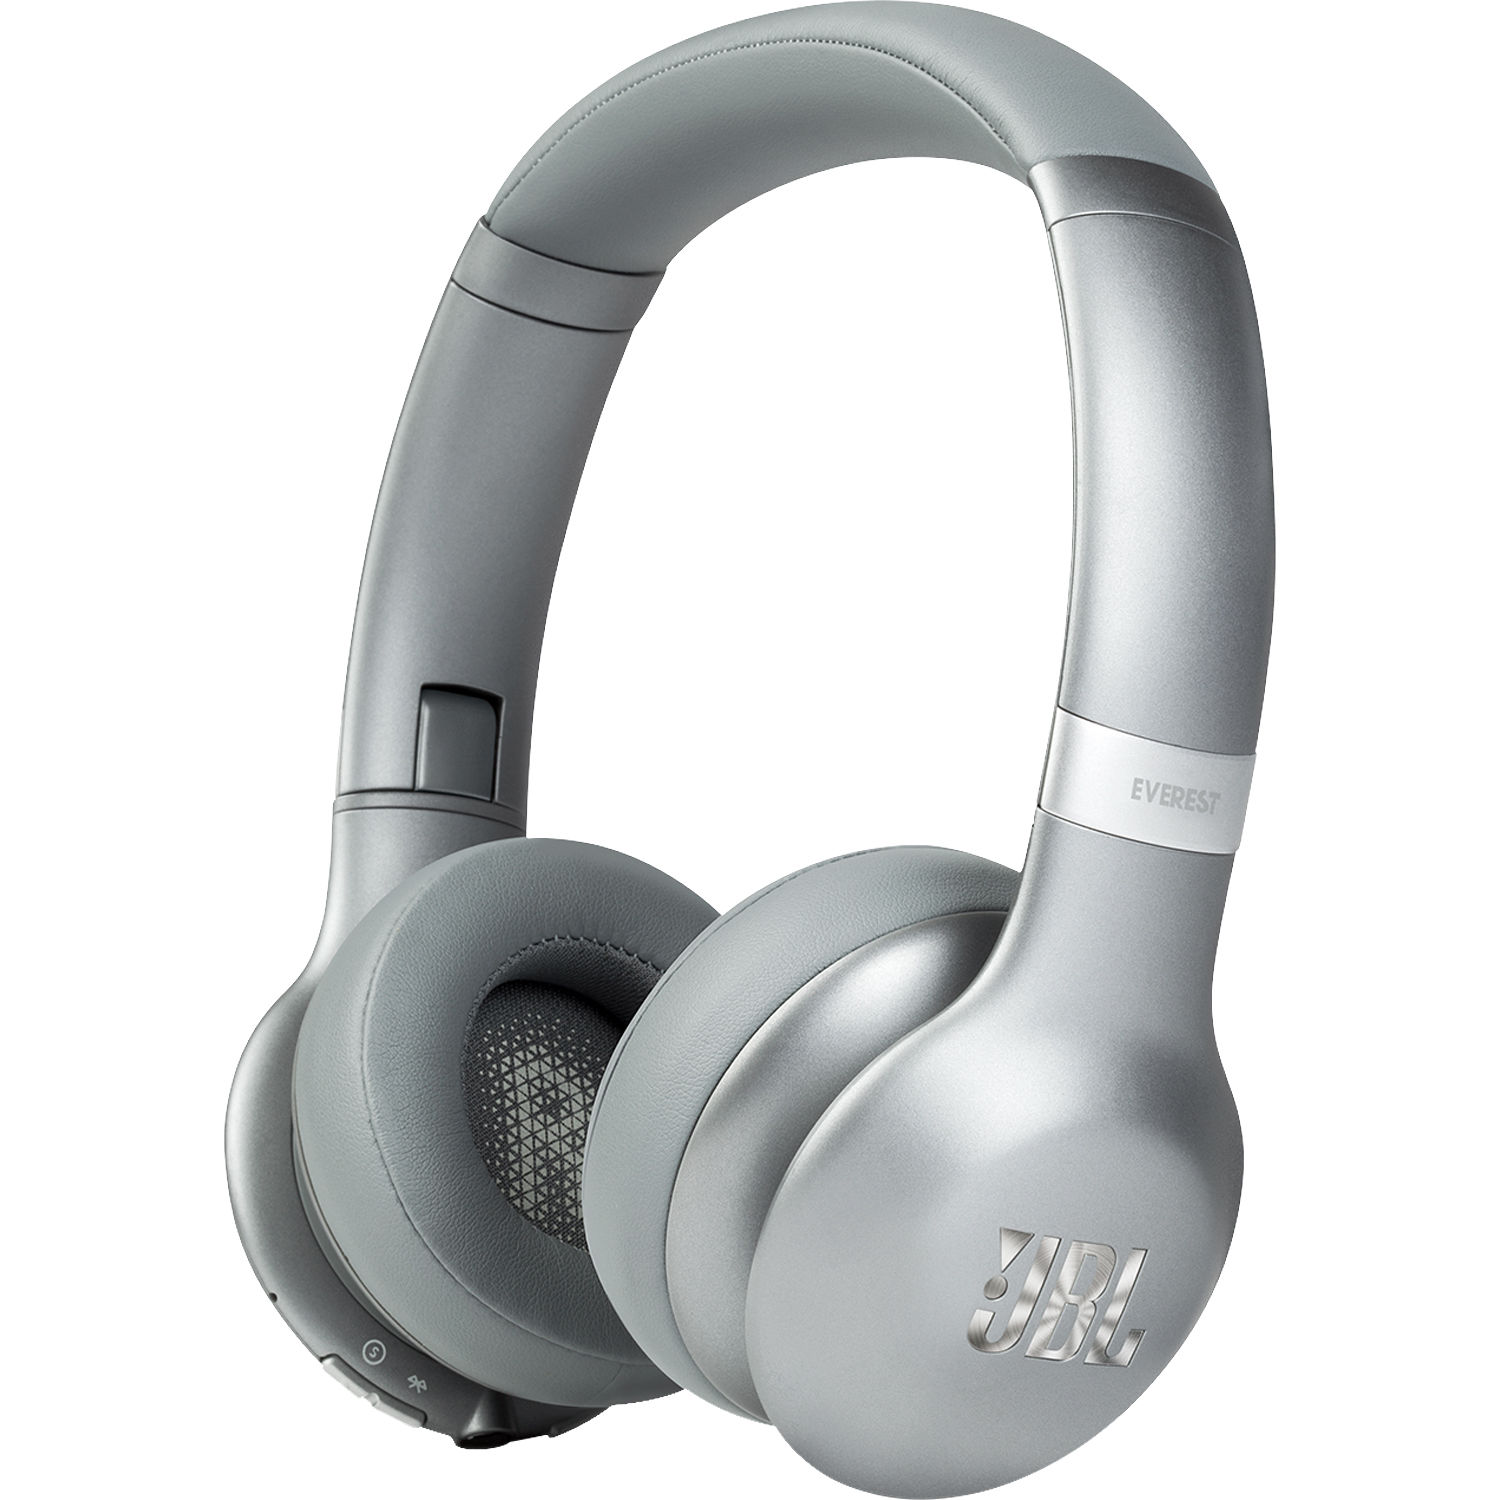 Jbl Everest 310ga Wireless Over Ear Headphones Jblv310gabtsilam